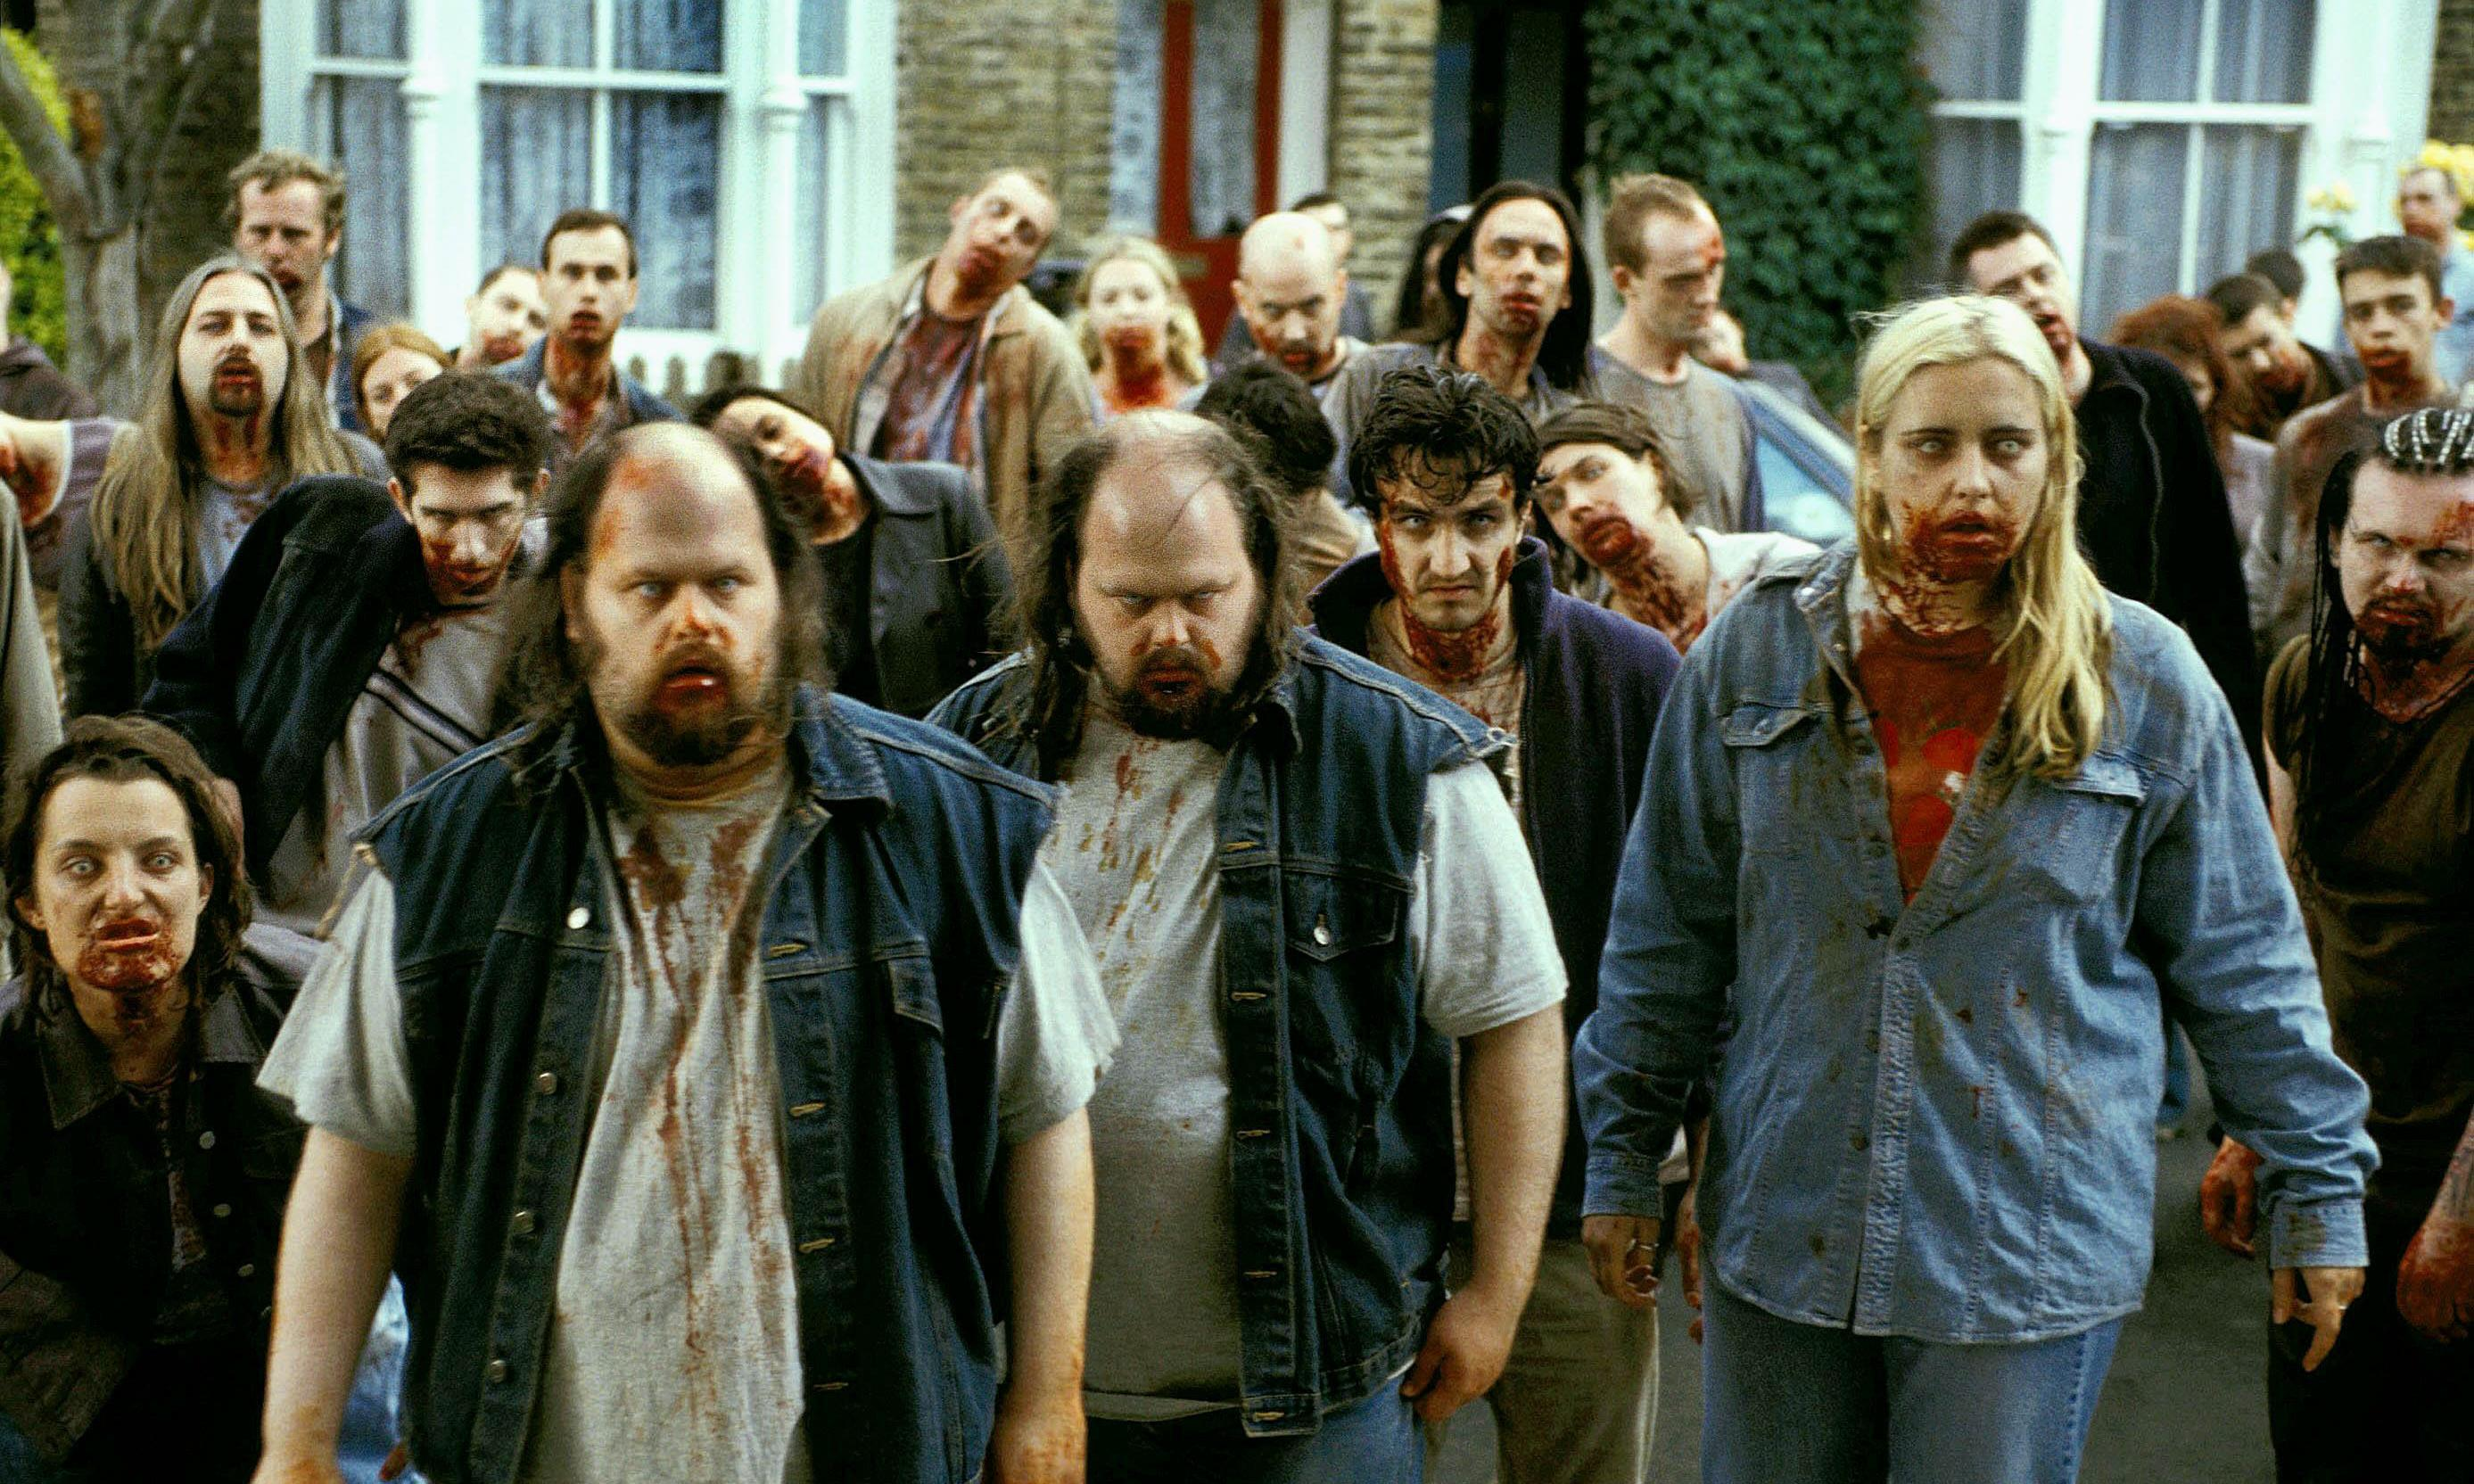 Do we have a 'zombie parliament'? Not all zombies are slow-witted idiots